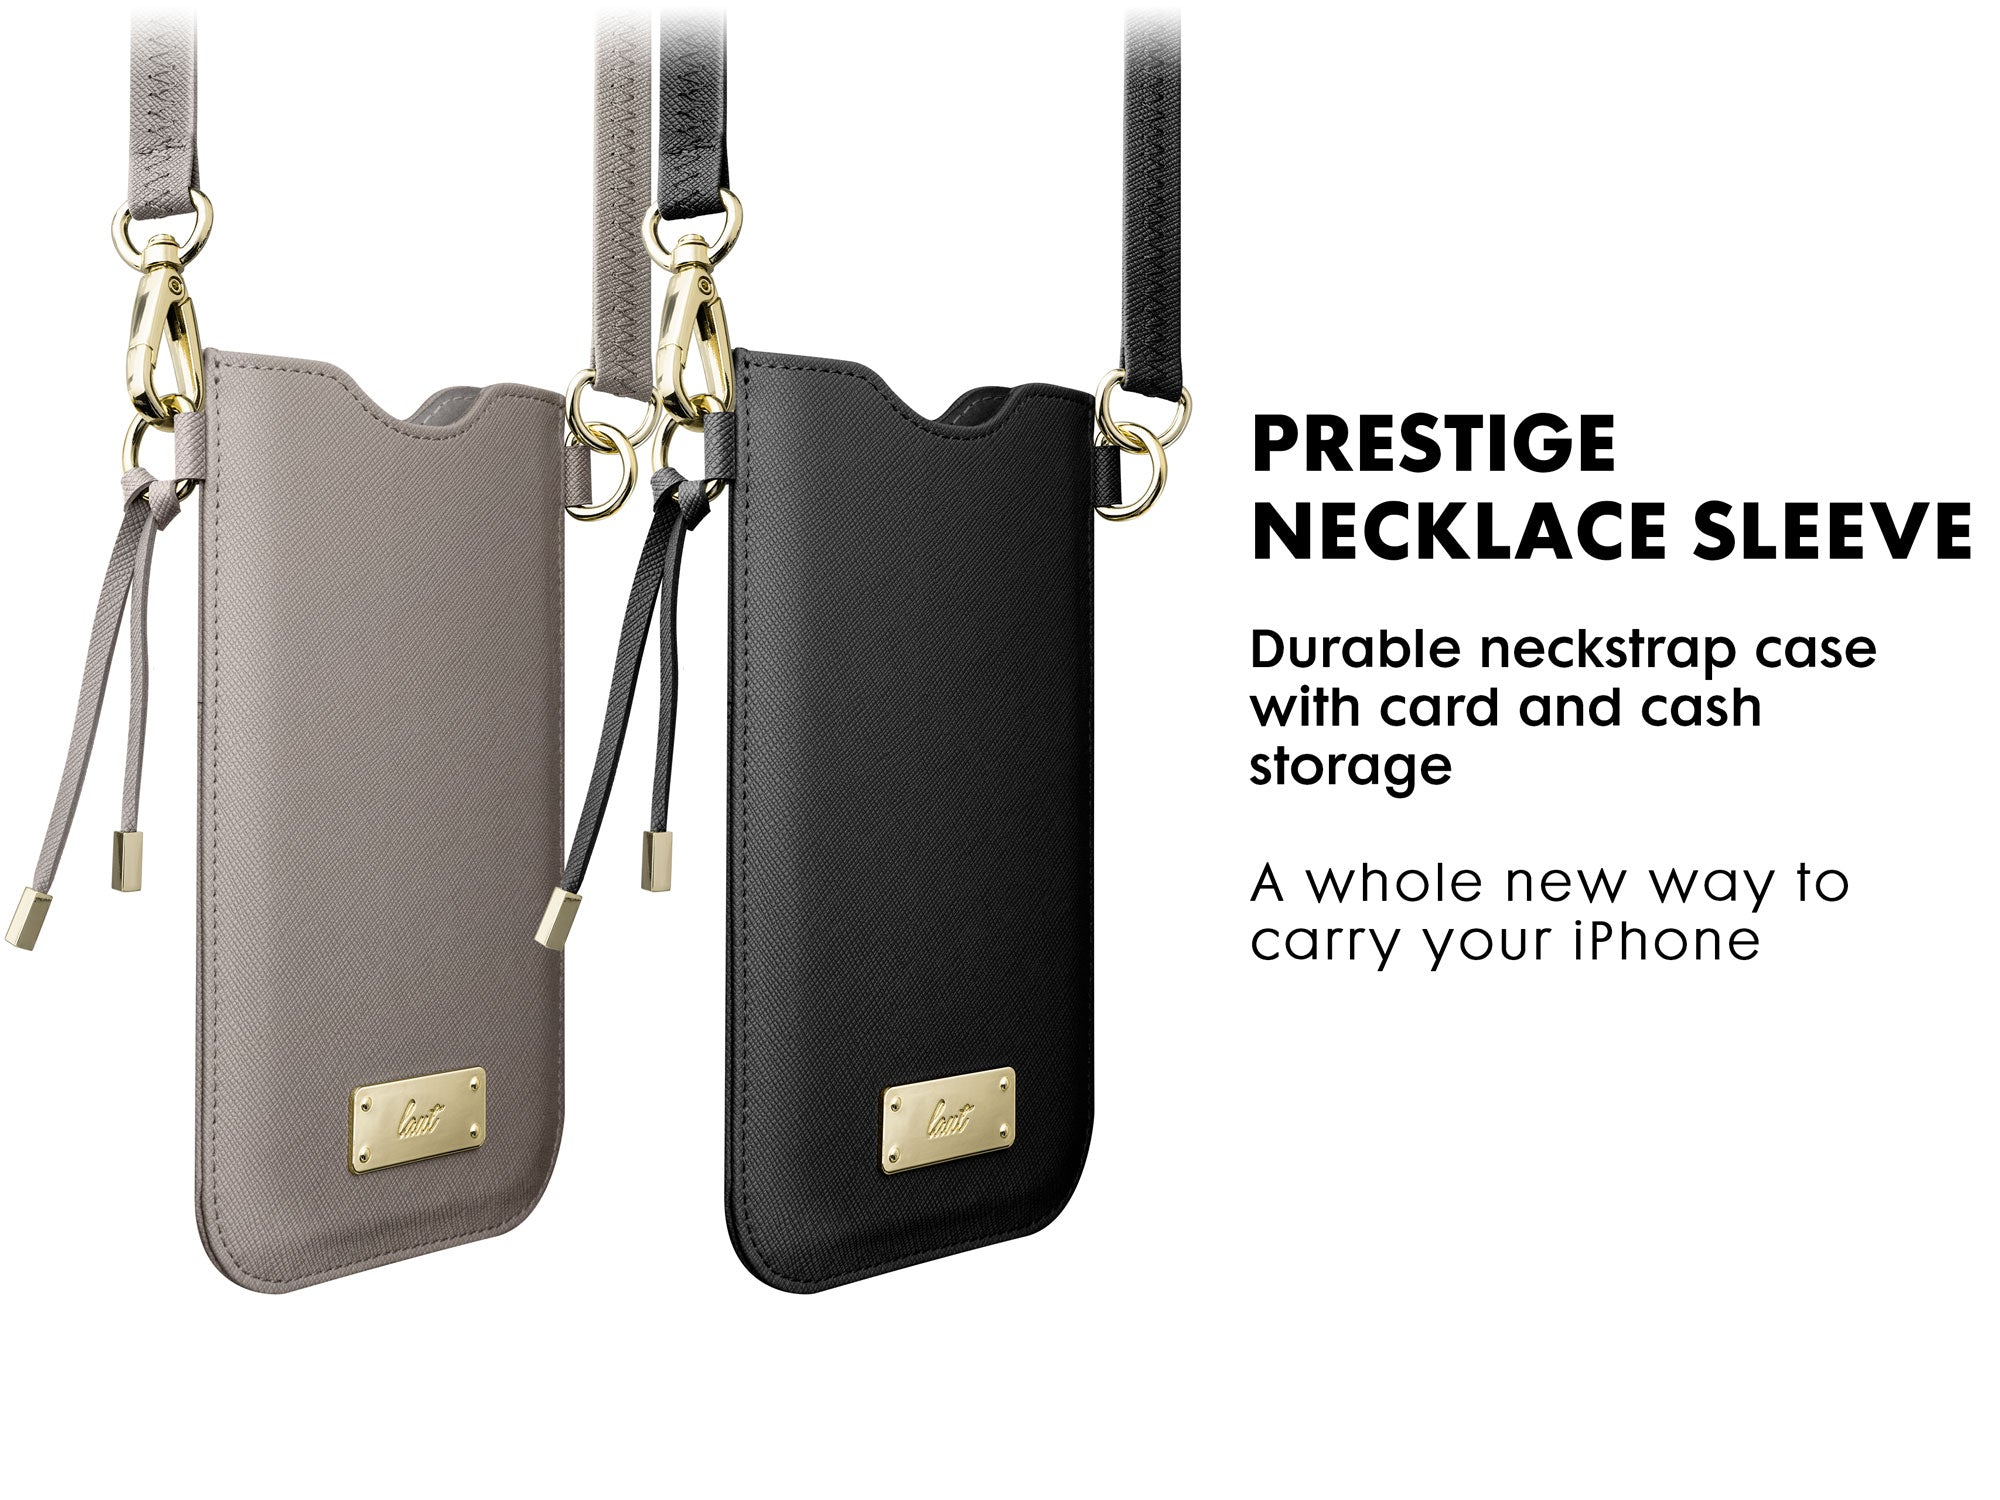 LAUT - Prestige necklace sleeve for iPhone SE 2020